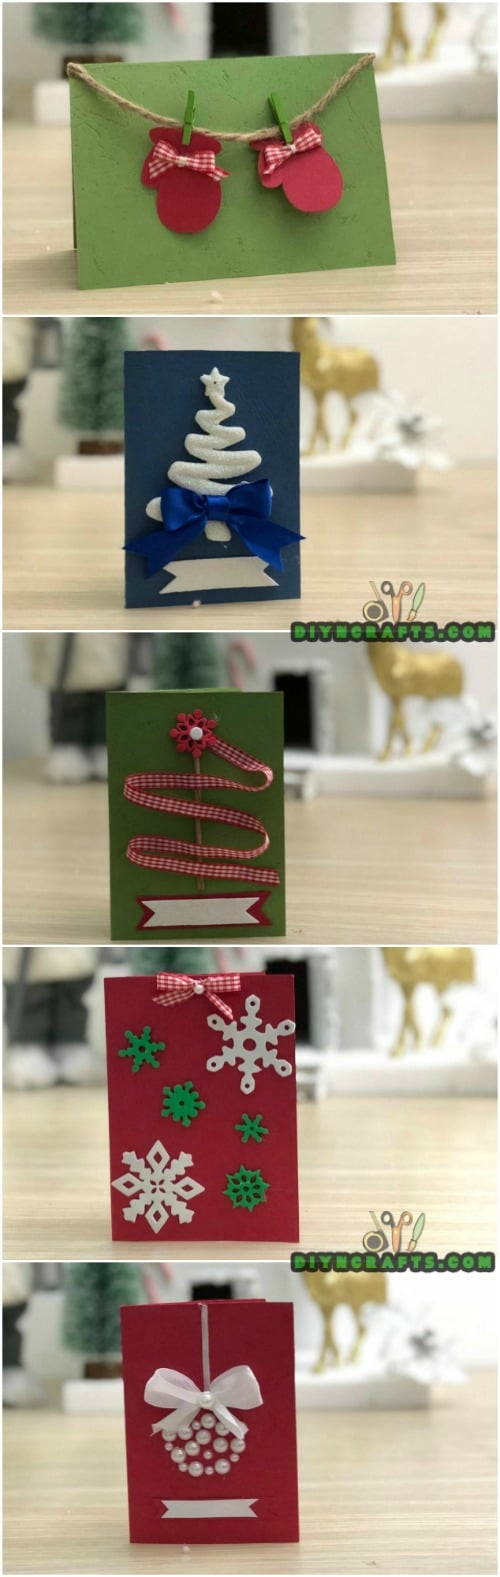 Send Your Season's Greetings In Style With These 5 DIY Christmas Cards